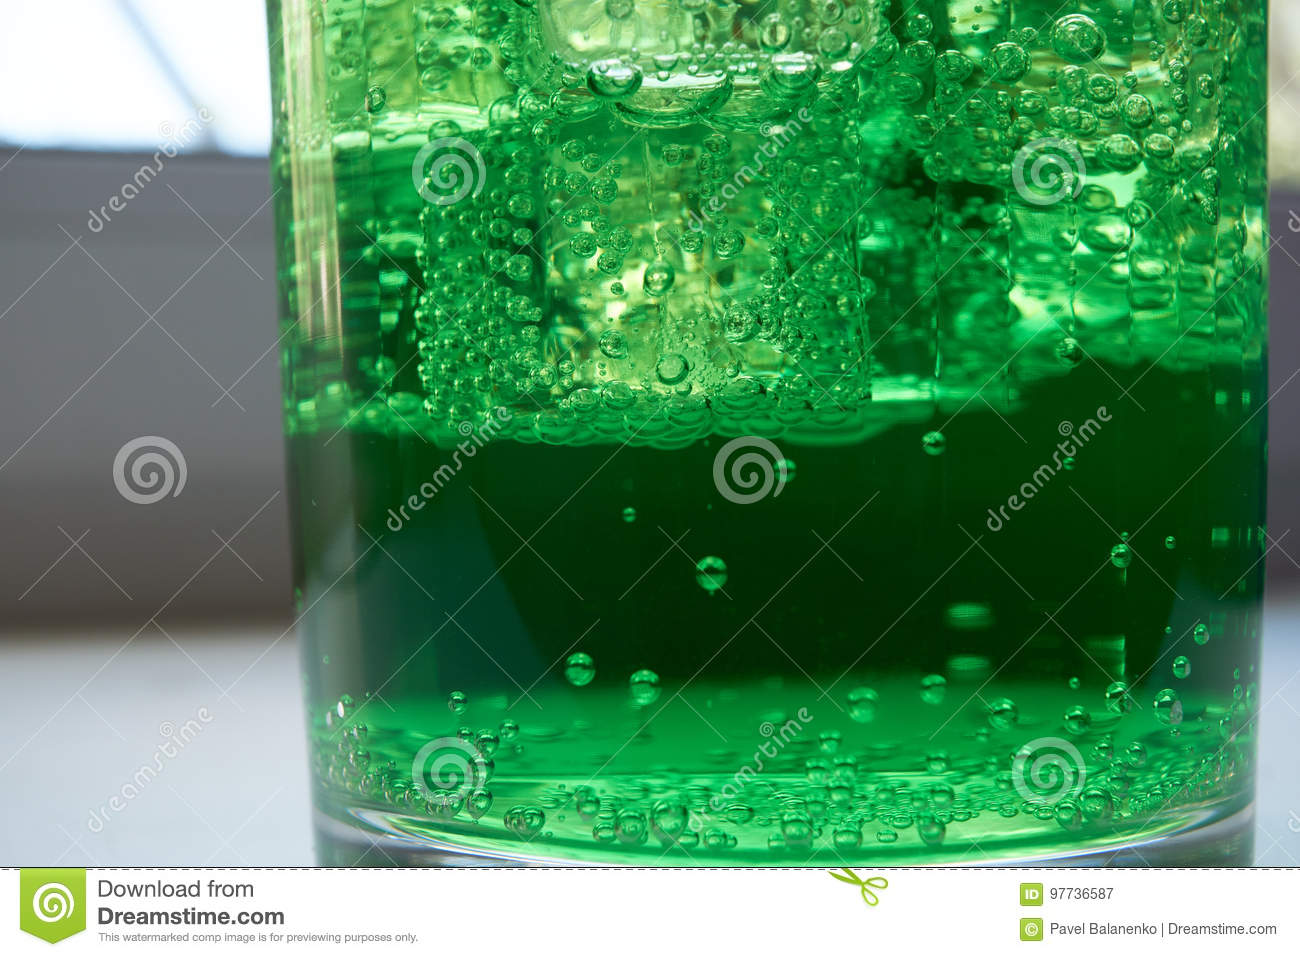 Closeup shot of a green aerated water